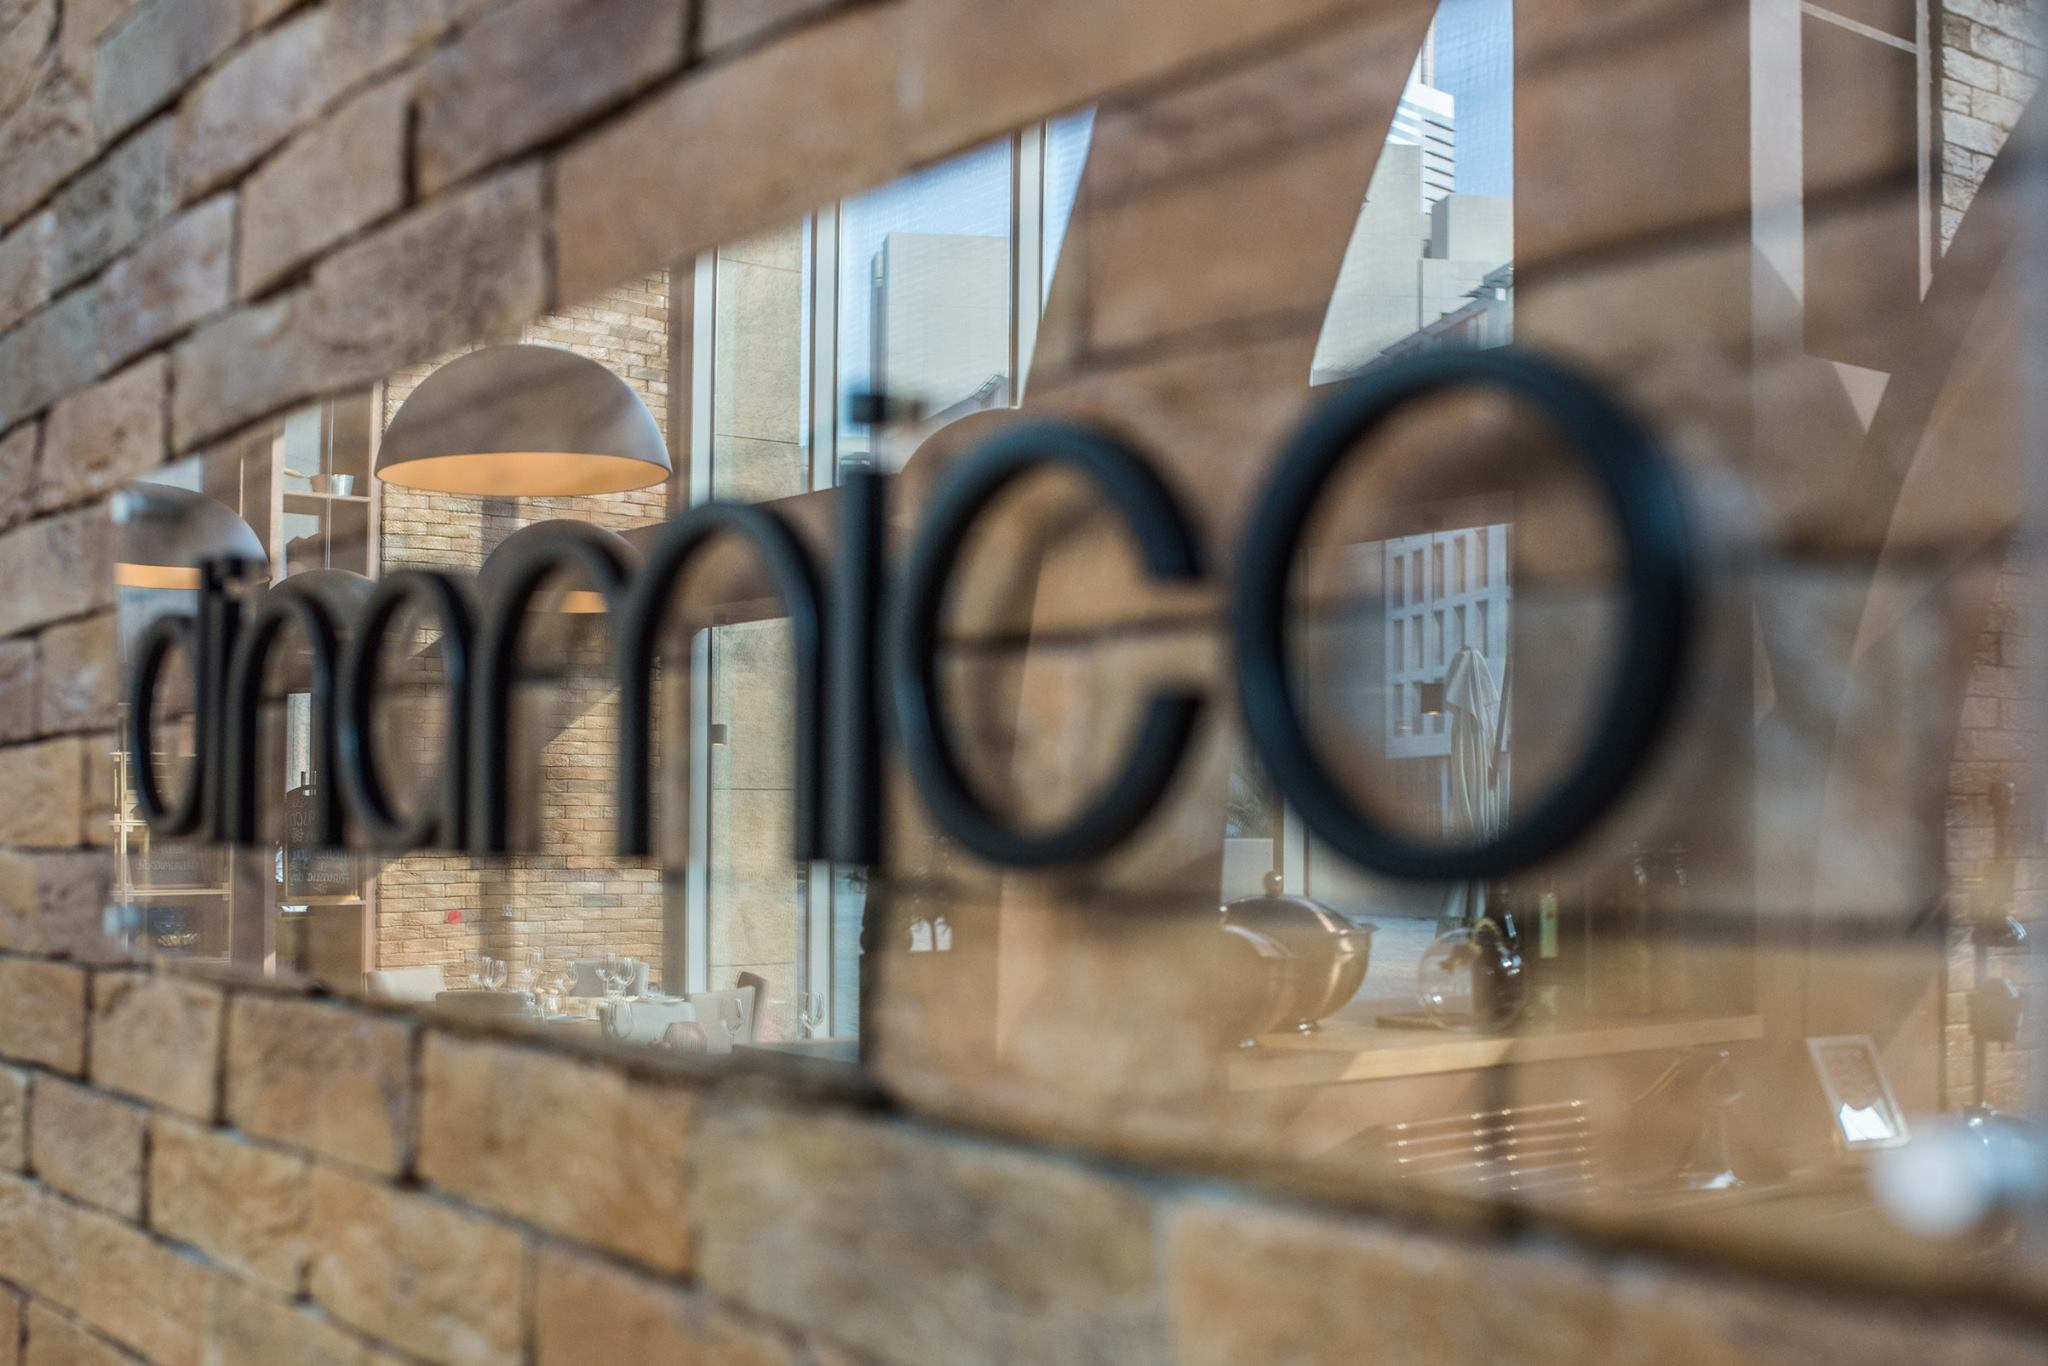 DINAMICO RESTAURANT – UNITED ARAB EMIRATES